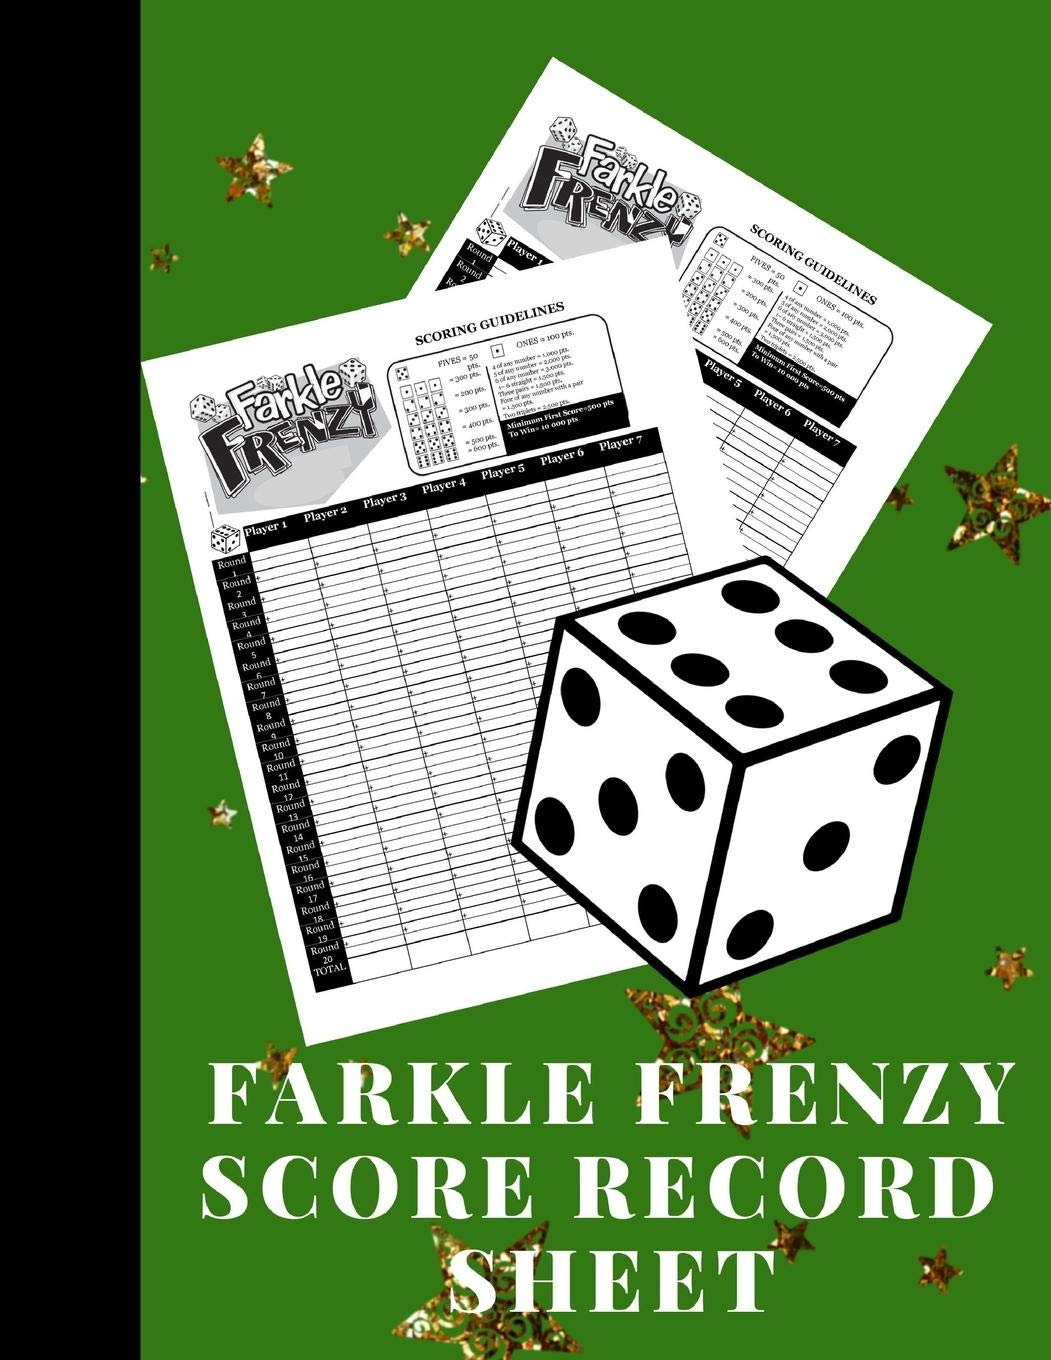 Farkle Frenzy Score Record Sheet: A Cute Green Large Scoring Card Pads, Log Book Keeper, Tracker, Of Farkle Game Set Dice Thrown; With 100 Pages To ... For Kids And Adults Idioma